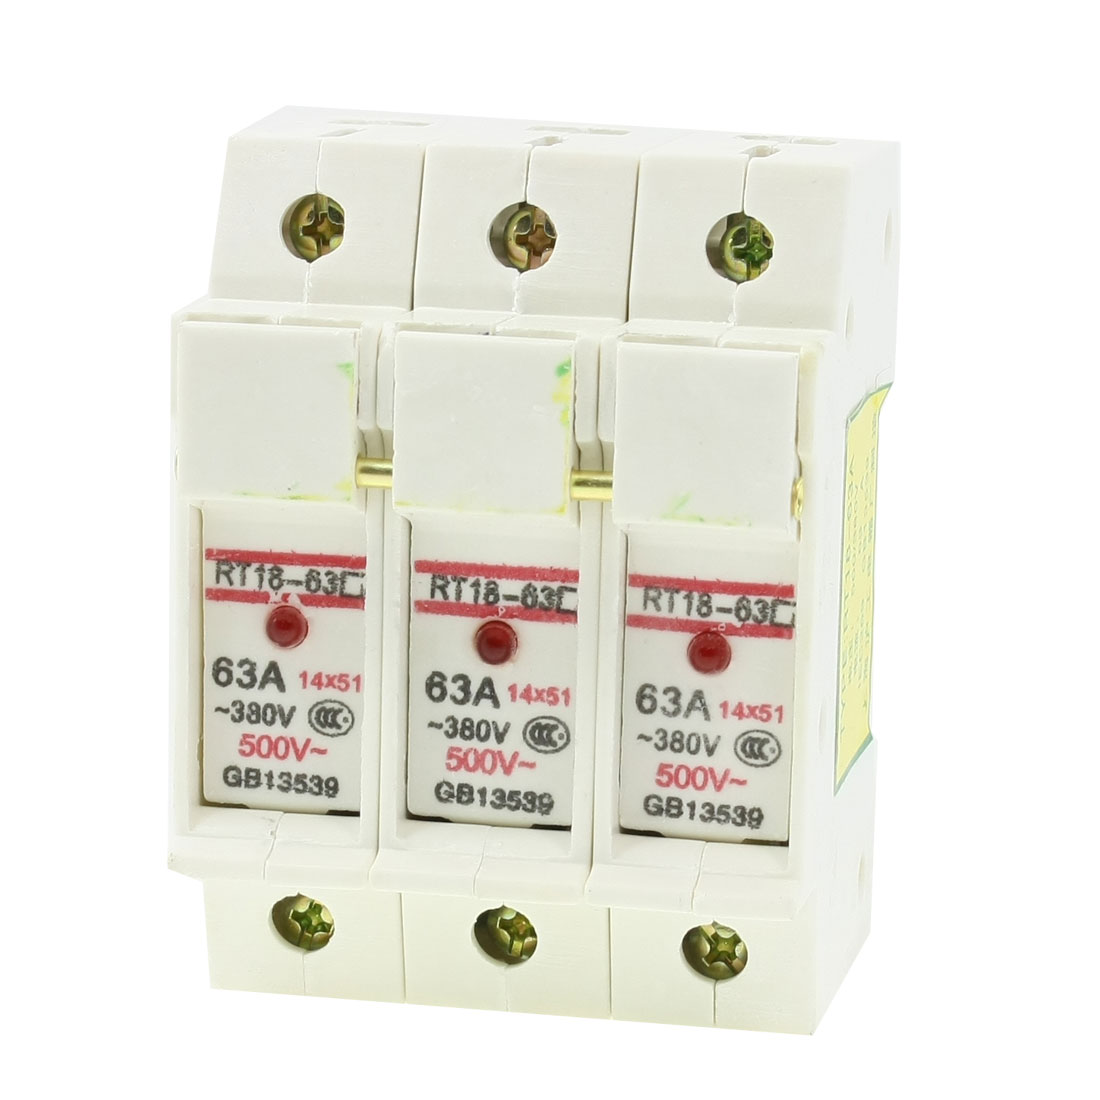 RT18-63 AC 380V 63A DIN Rail Mount 51mmx14mm 3P 3 Pole Fuse Holder w Indicator Light